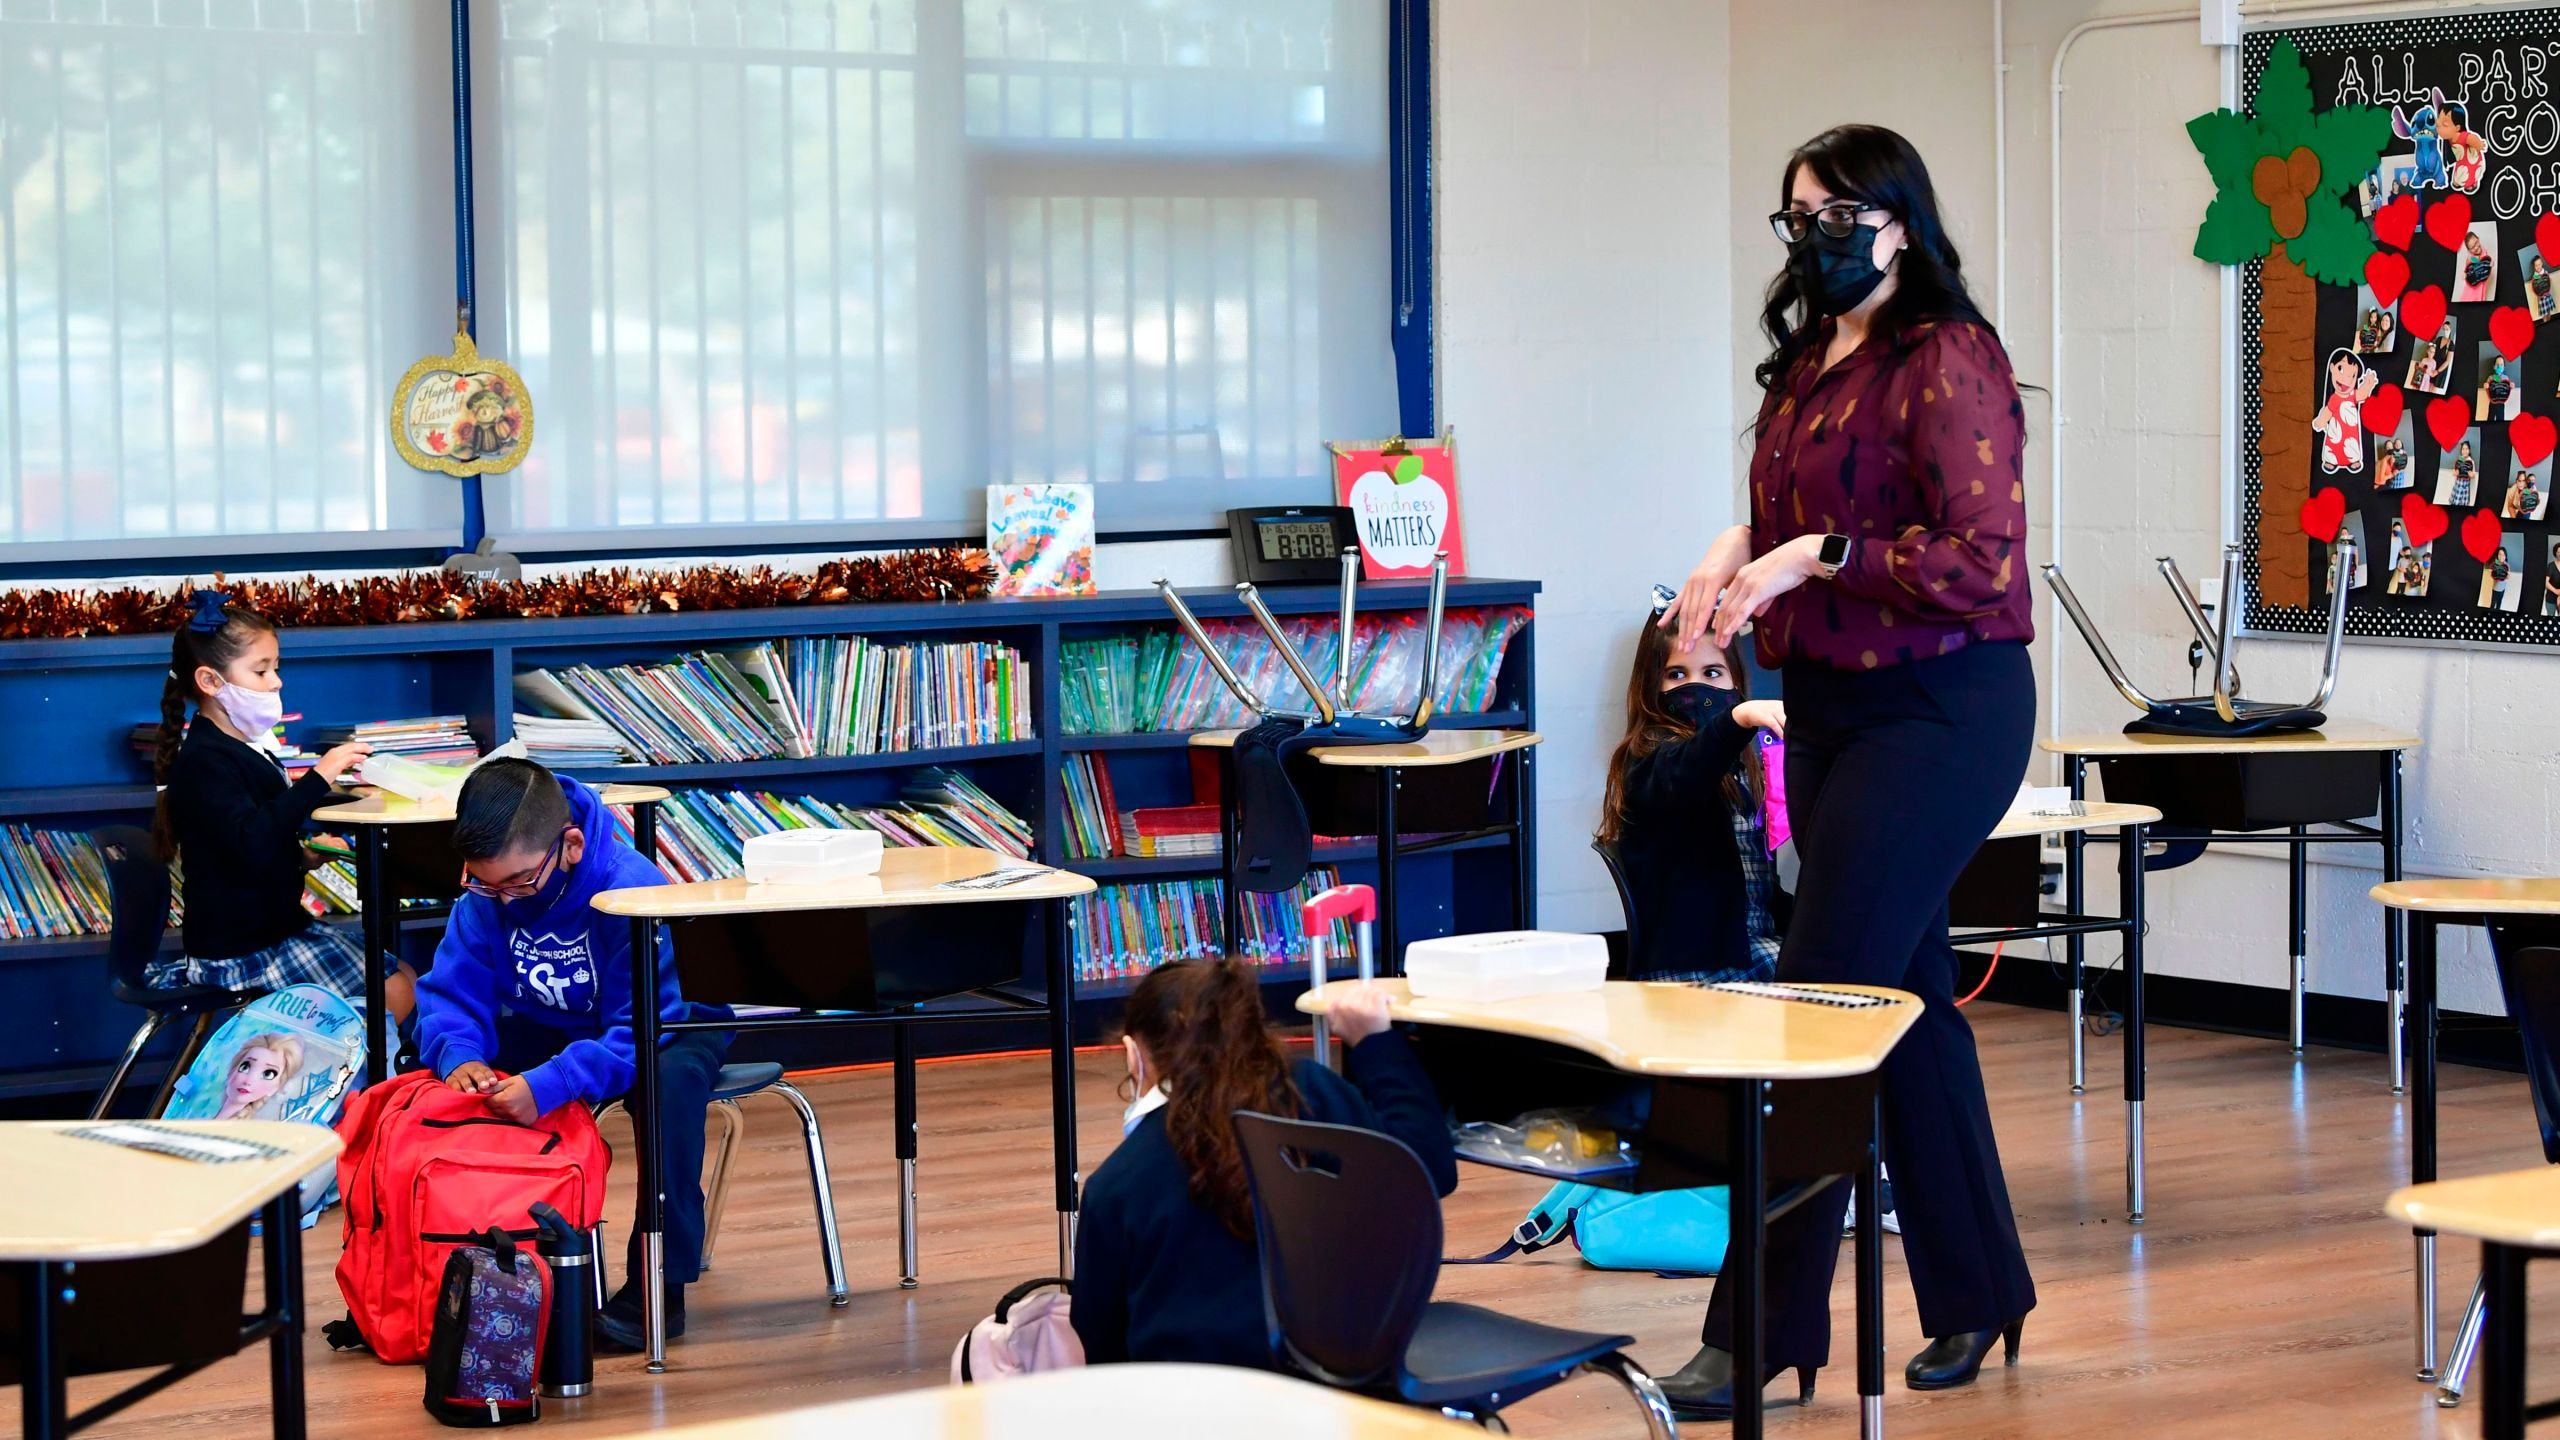 First grade instructor Laura Sanchez speaks to her returning students at St. Joseph Catholic School in La Puente, California on November 16, 2020, where pre-kindergarten to Second Grade students in need of special services returned to the classroom today for in-person instruction. (Frederic J. Brown/AFP via Getty Images)